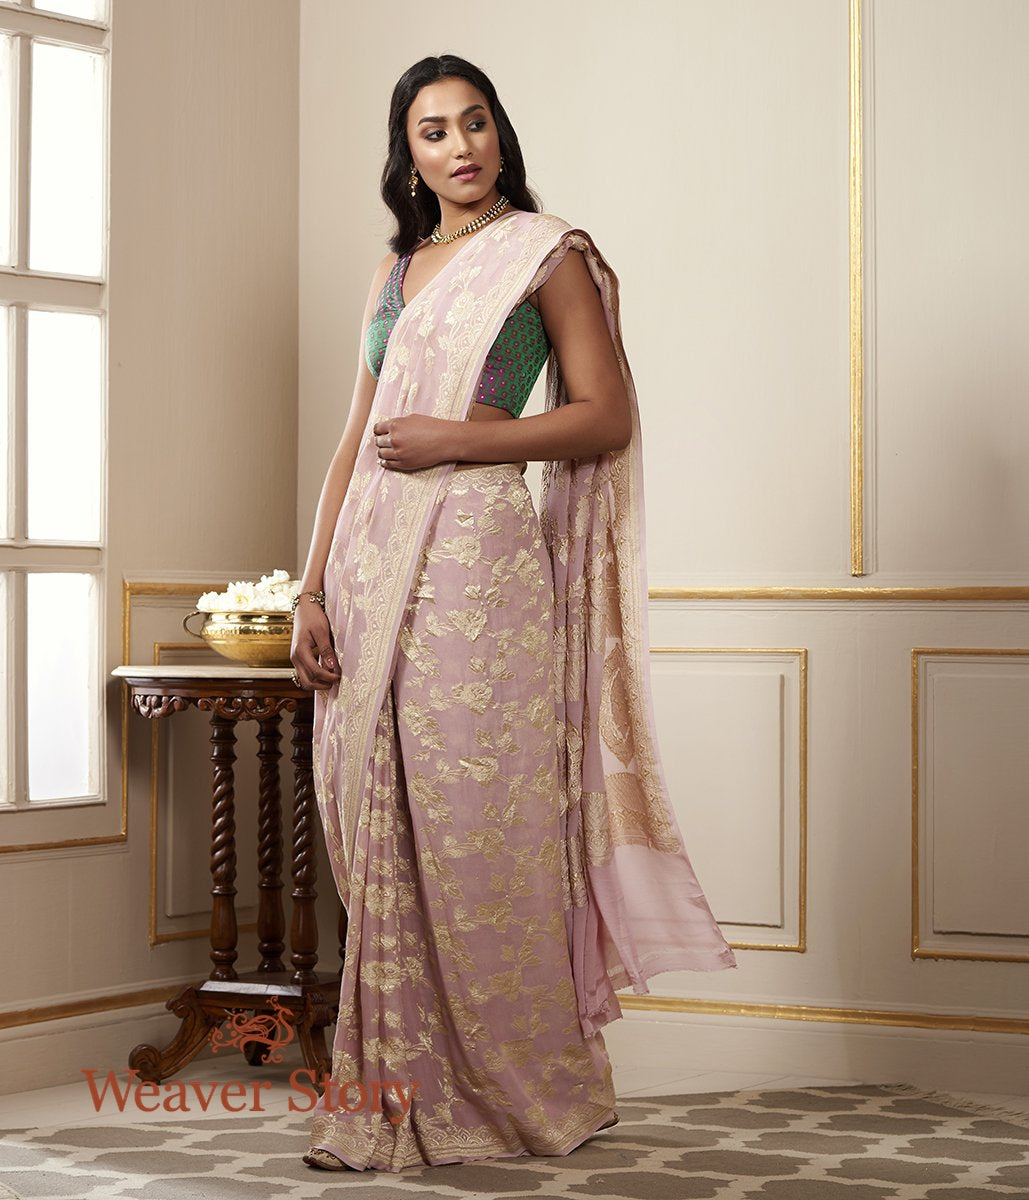 Handwoven Light Pink Banarasi Georgette Saree with Floral Jaal